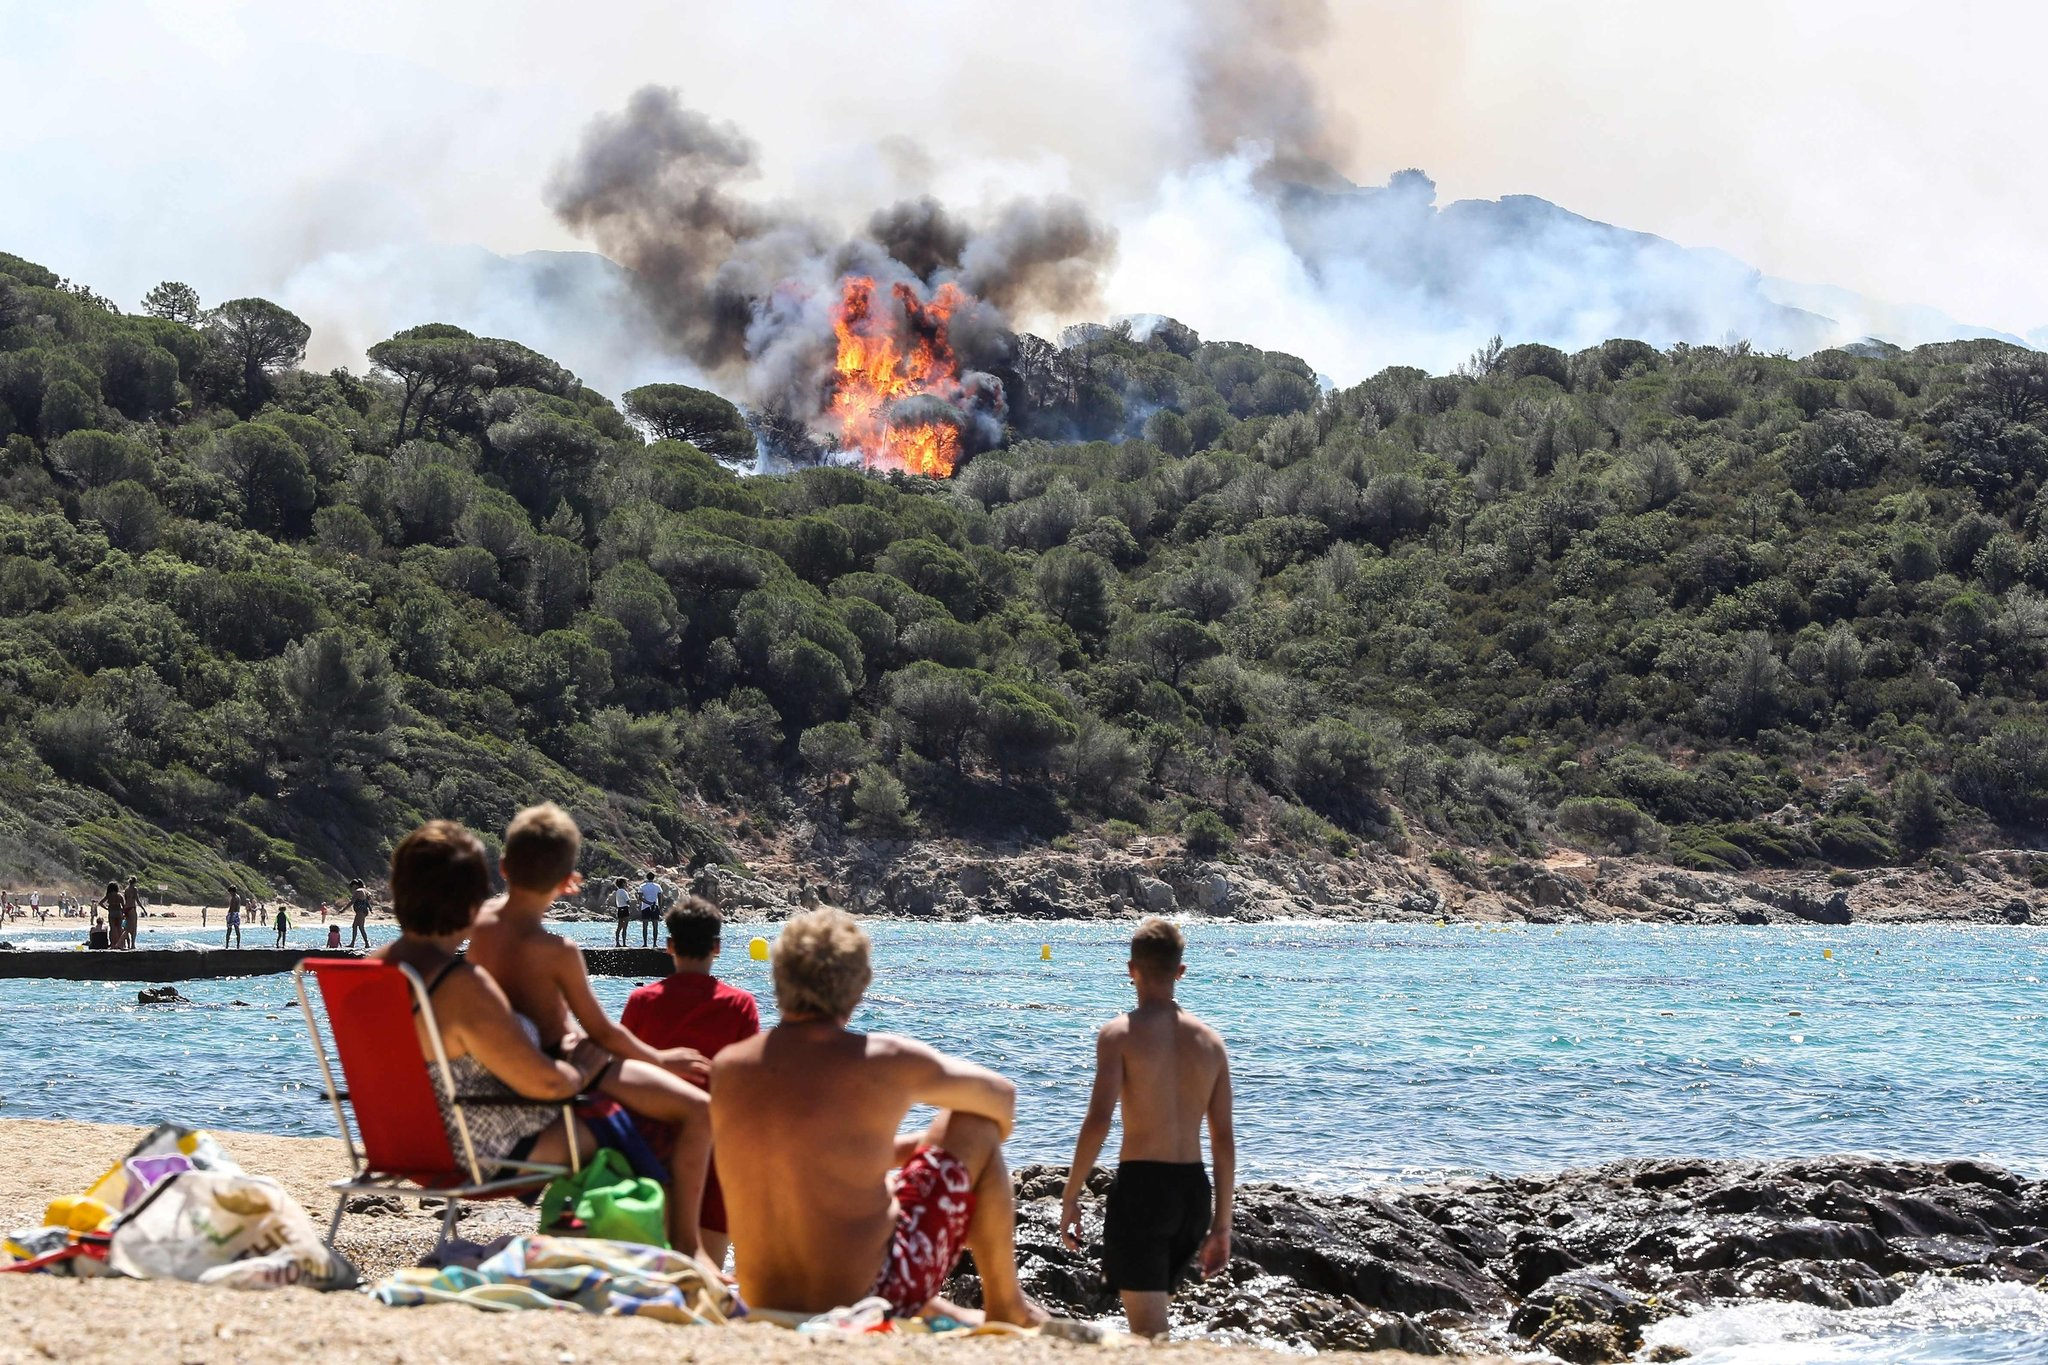 A forest fire in La Croix-Valmer, near Saint-Tropez, France, on Tuesday. CreditValery Hache/Agence France-Presse — Getty Images